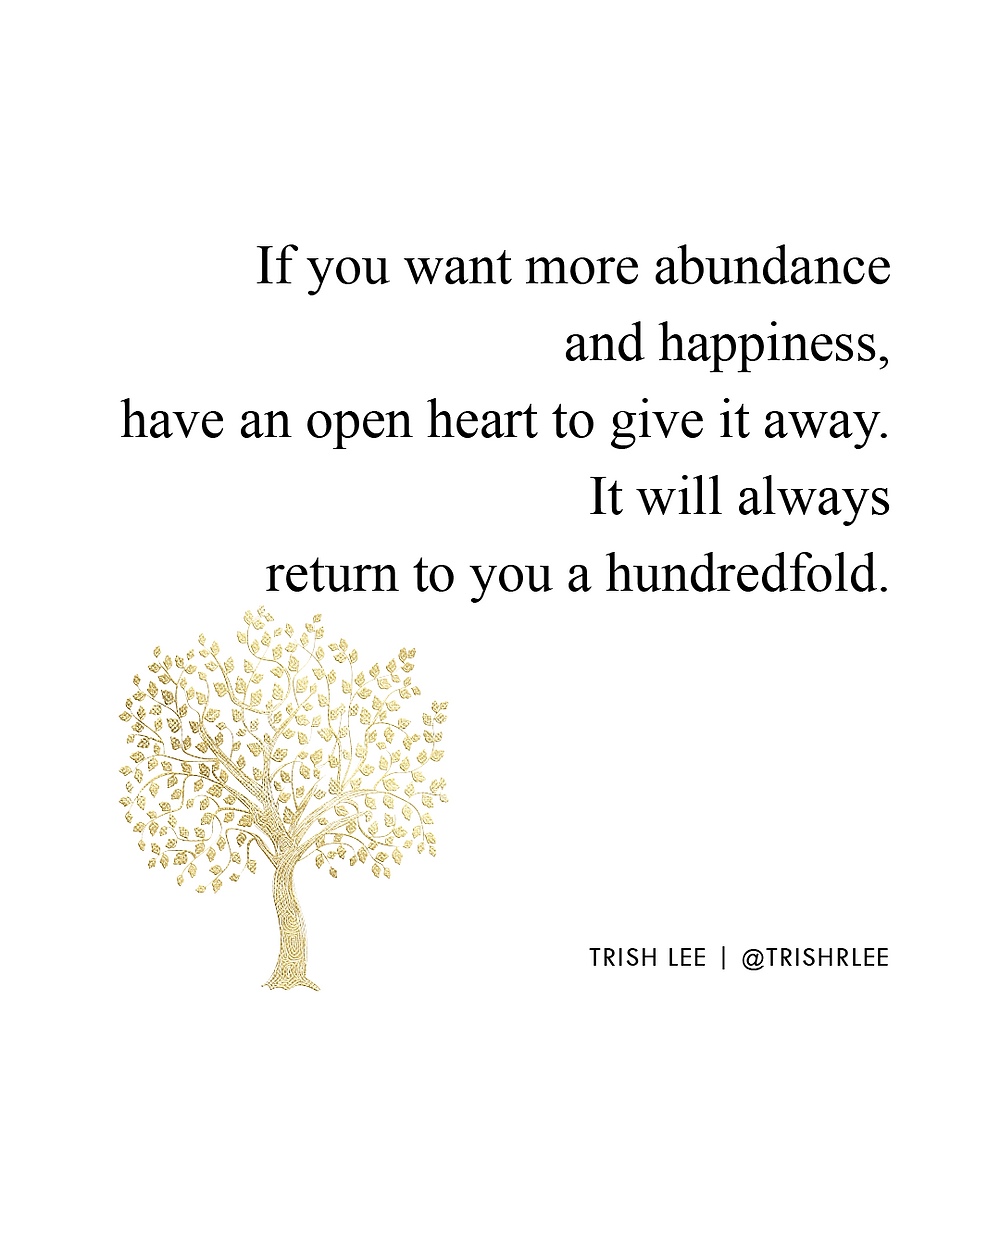 If you want more abundance and happiness, have an open heart to give it away. It will always return to you a hundredfold